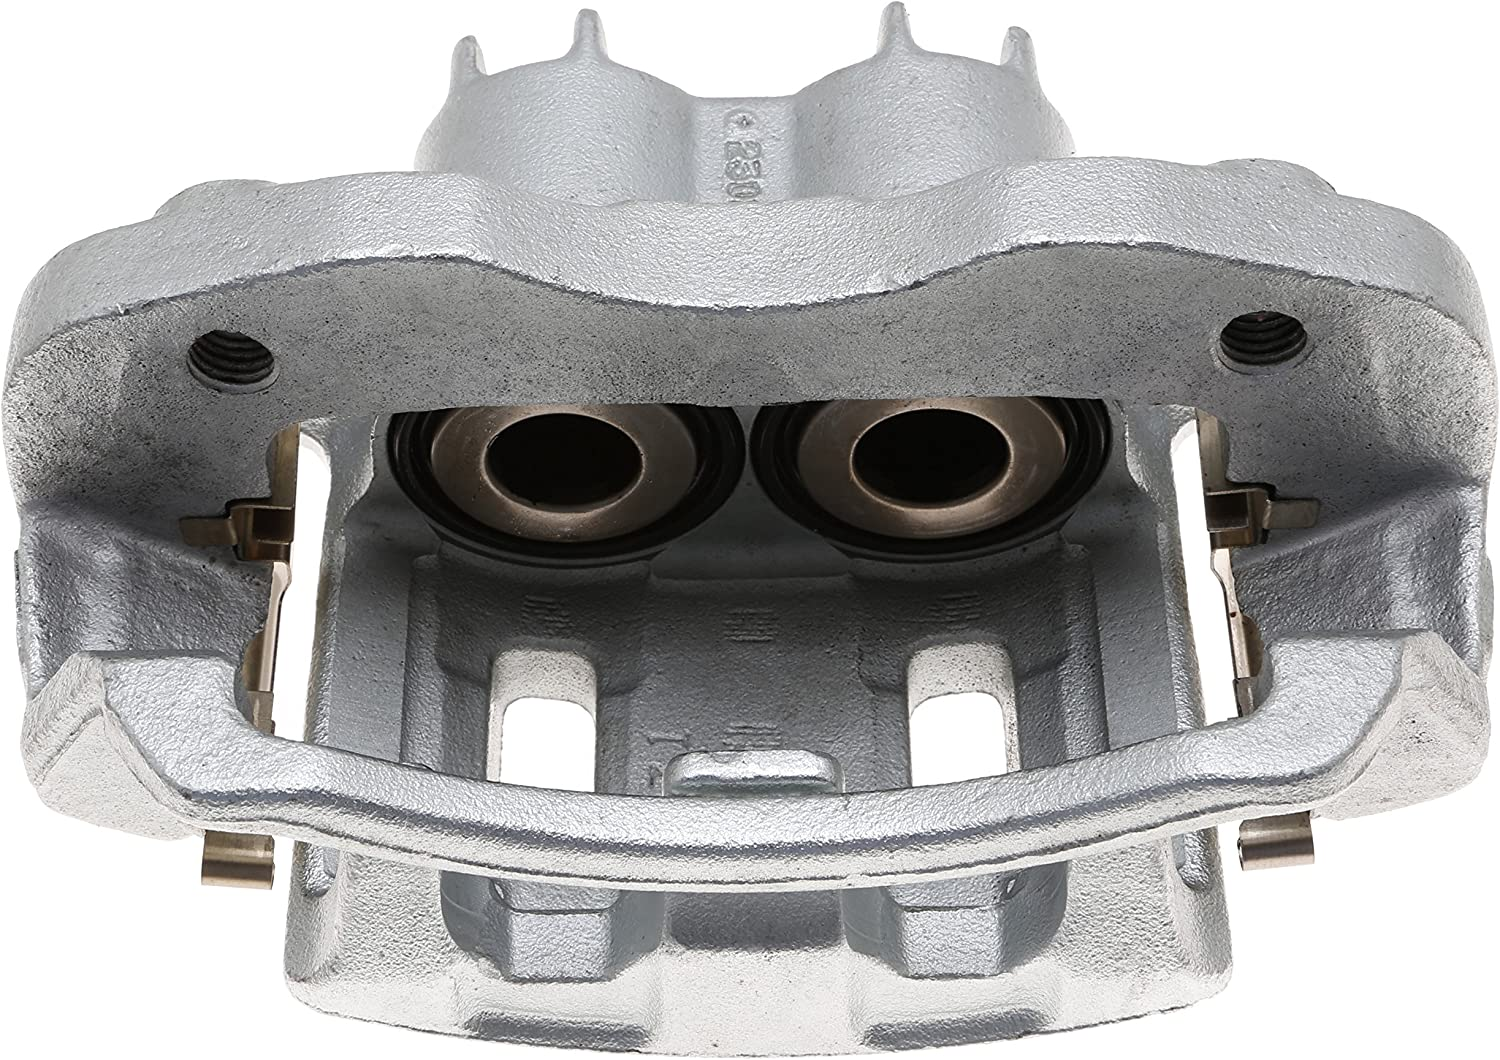 ACDelco 18FR1405C Professional Front Disc Brake Caliper Assembly without Pads Remanufactured Friction Ready Coated